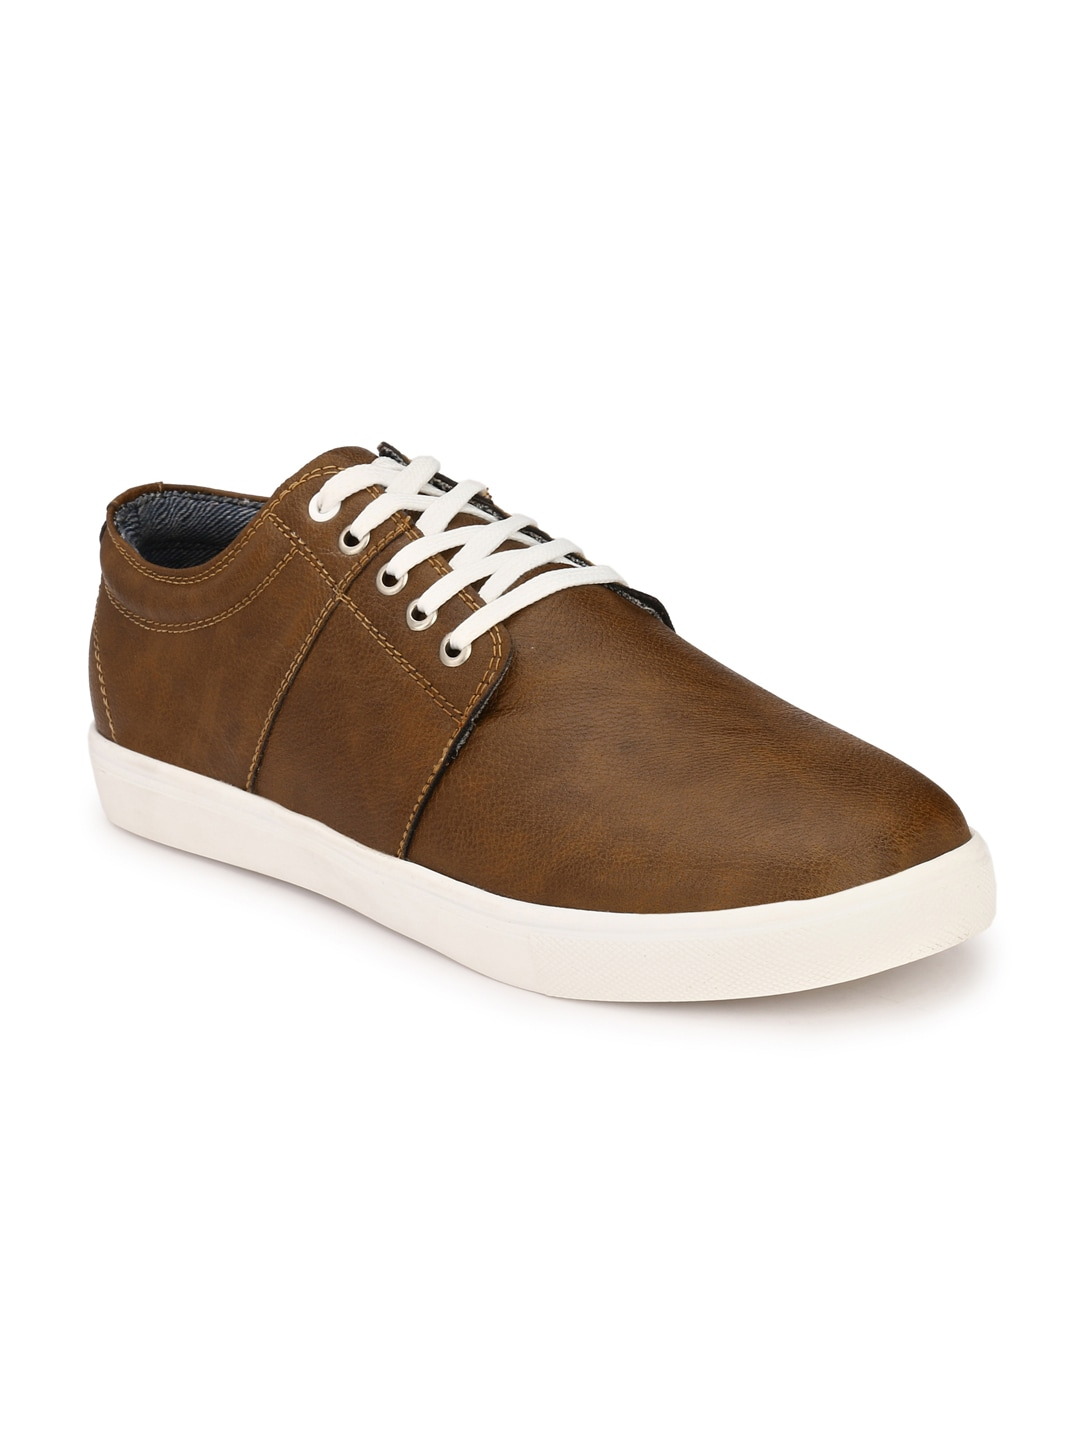 Sir Corbett Men Brown Casual Shoes image